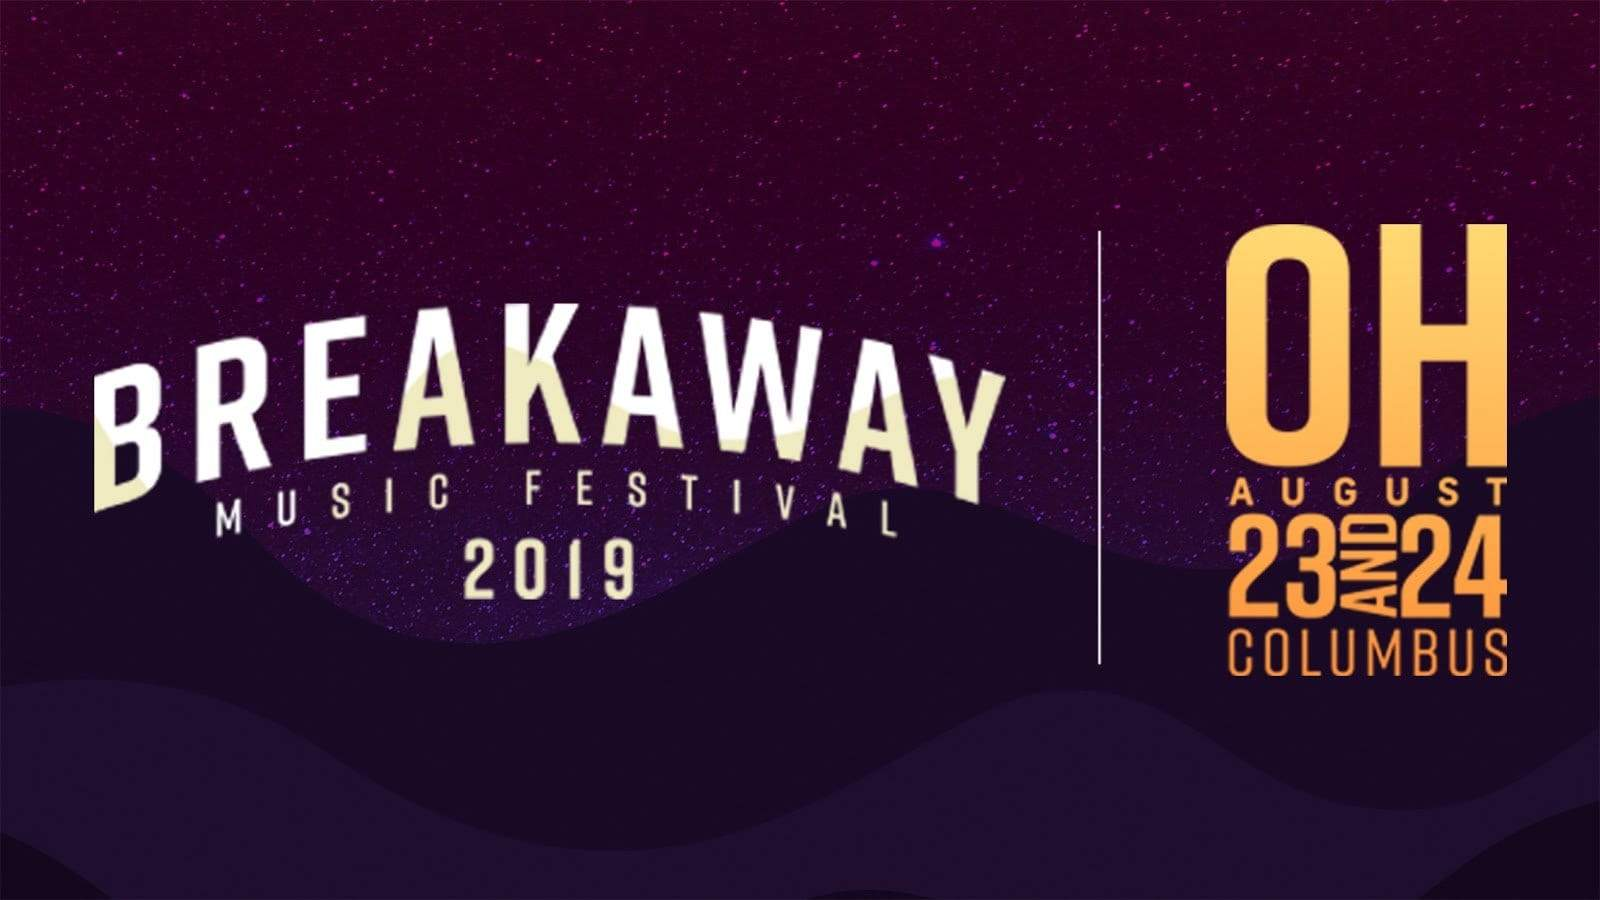 Breakaway Music Festival - Columbus: 5 Sets Not To Miss